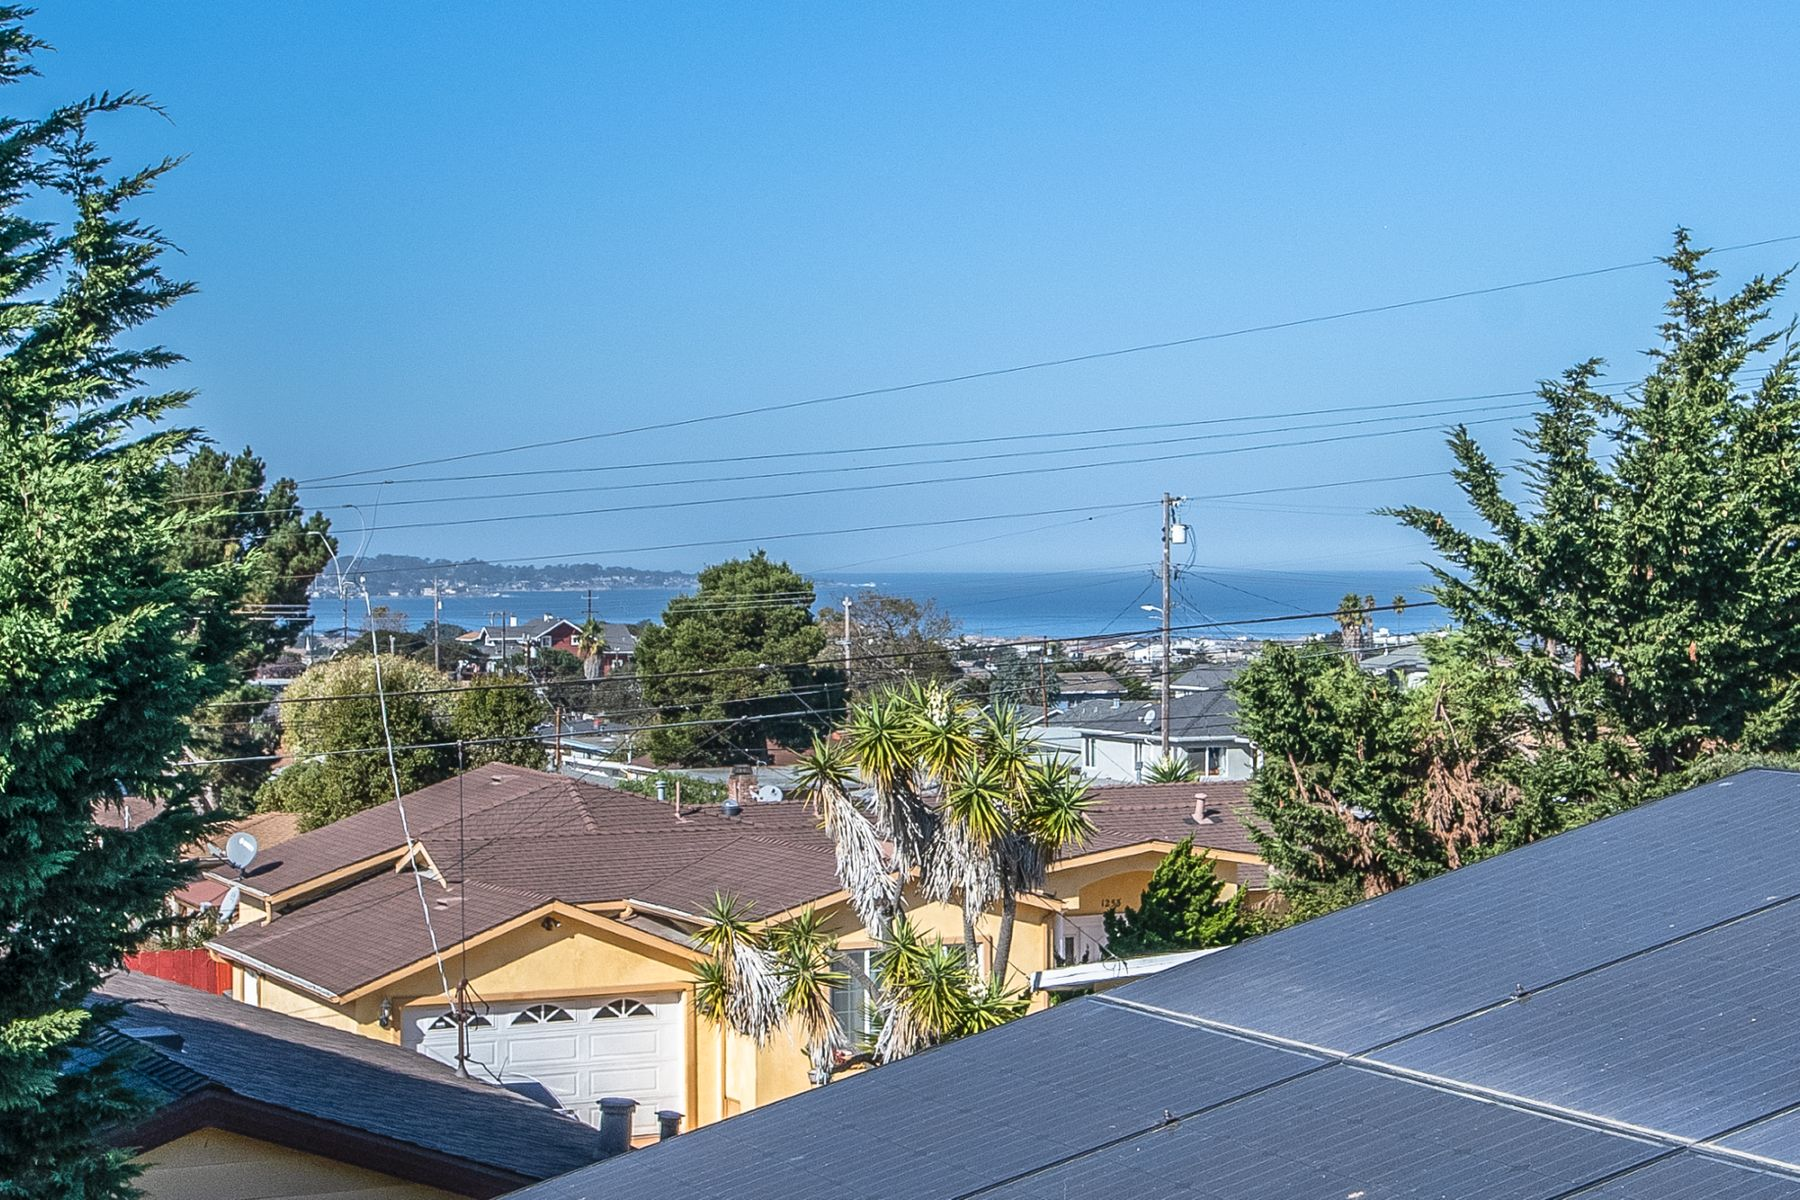 Single Family Homes for Sale at Ocean Views Upper Seaside 1-Story Home 1241 Darwin Street Seaside, California 93955 United States